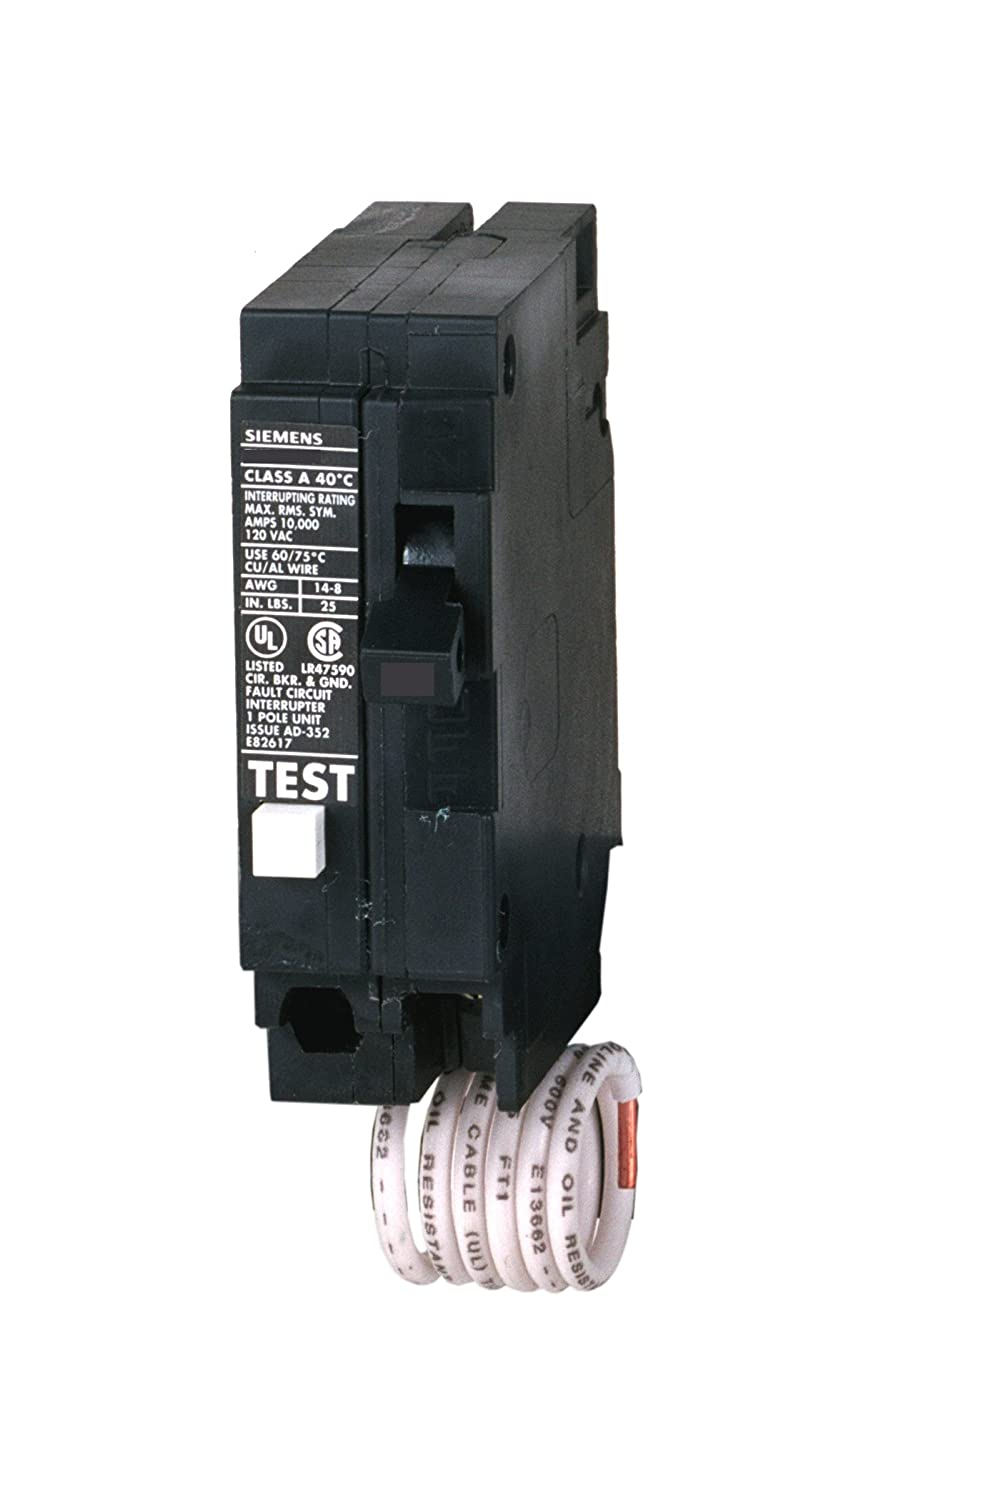 Siemens QE120H 20-Amp Single Pole 120-Volt Group Fault Equipment Protection Circuit Breaker Siemens HI